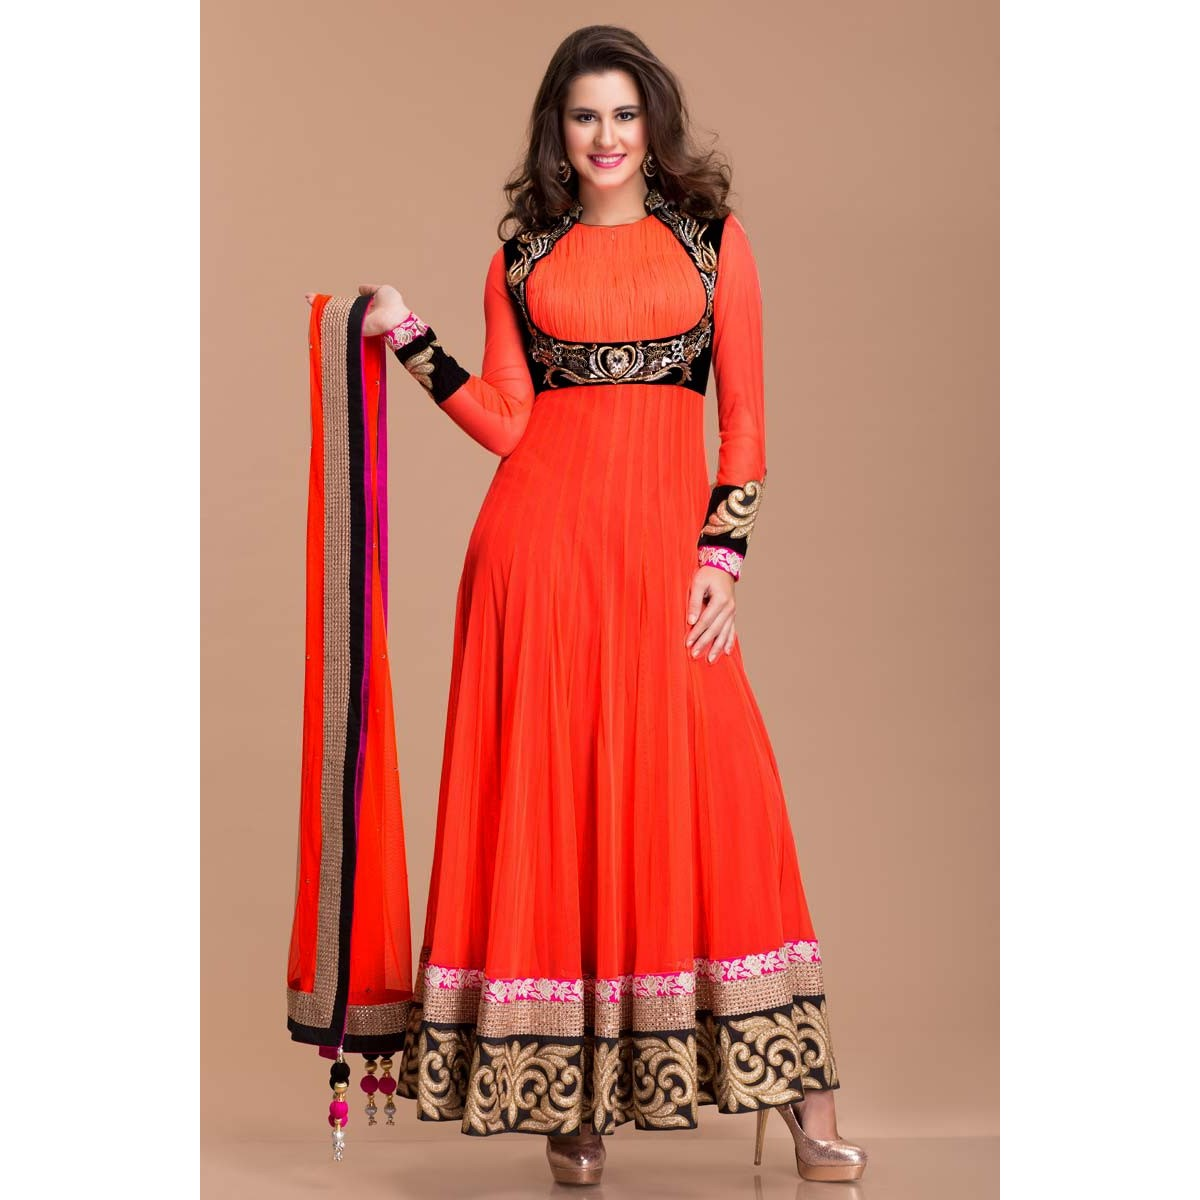 db17d81a2df Designer Frock Style Anarkali, Womens Suits Online - Andaaz Fashion